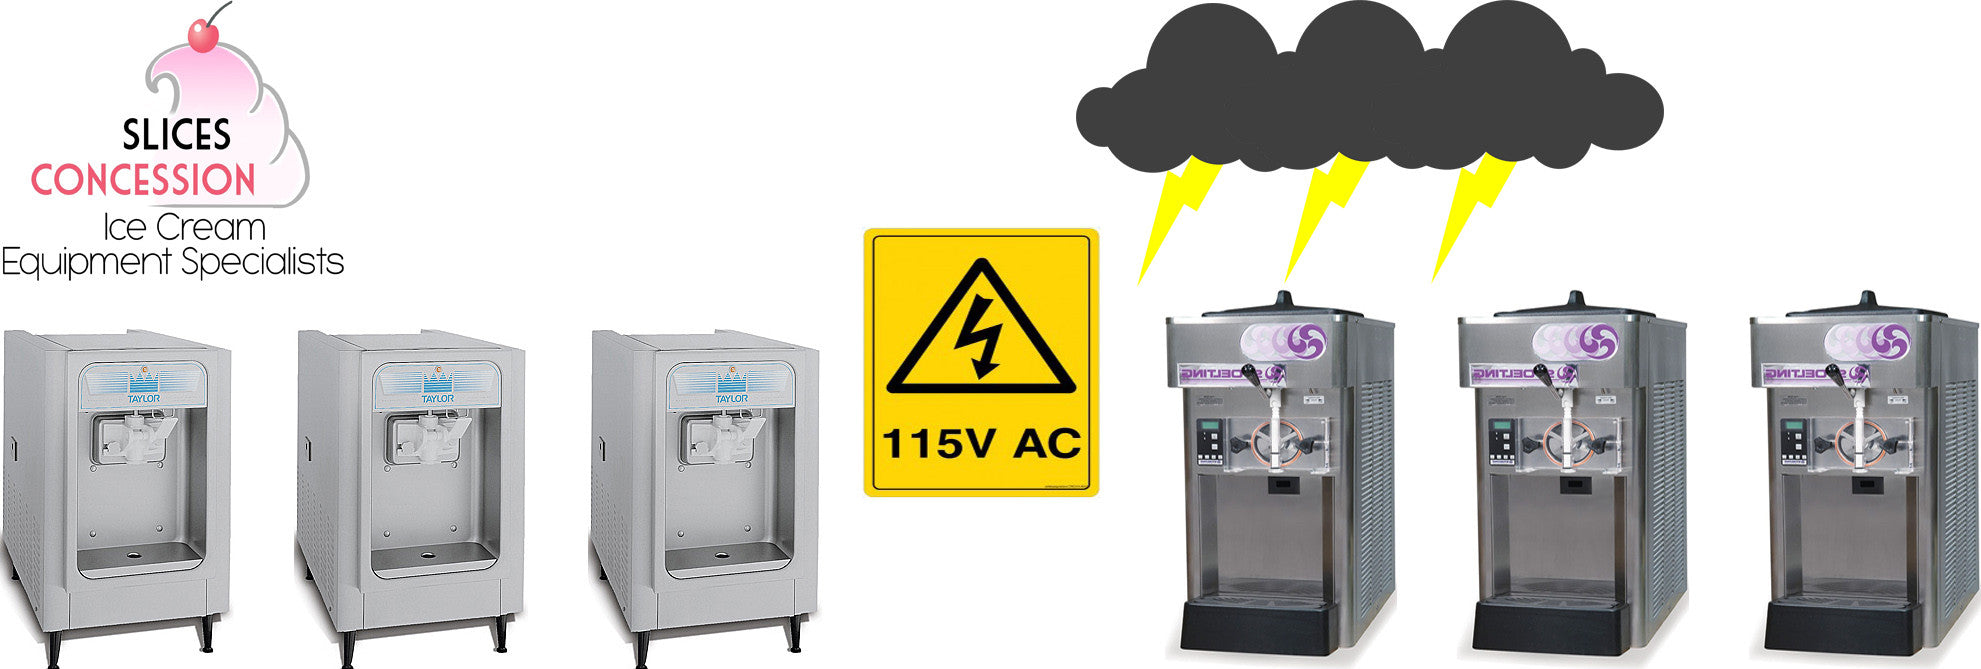 Three Taylor ice cream machines and three stoelting frozen beverage machines in a line behind a 115 Volt sign with Slices Concession logo and three storm clouds with thunder